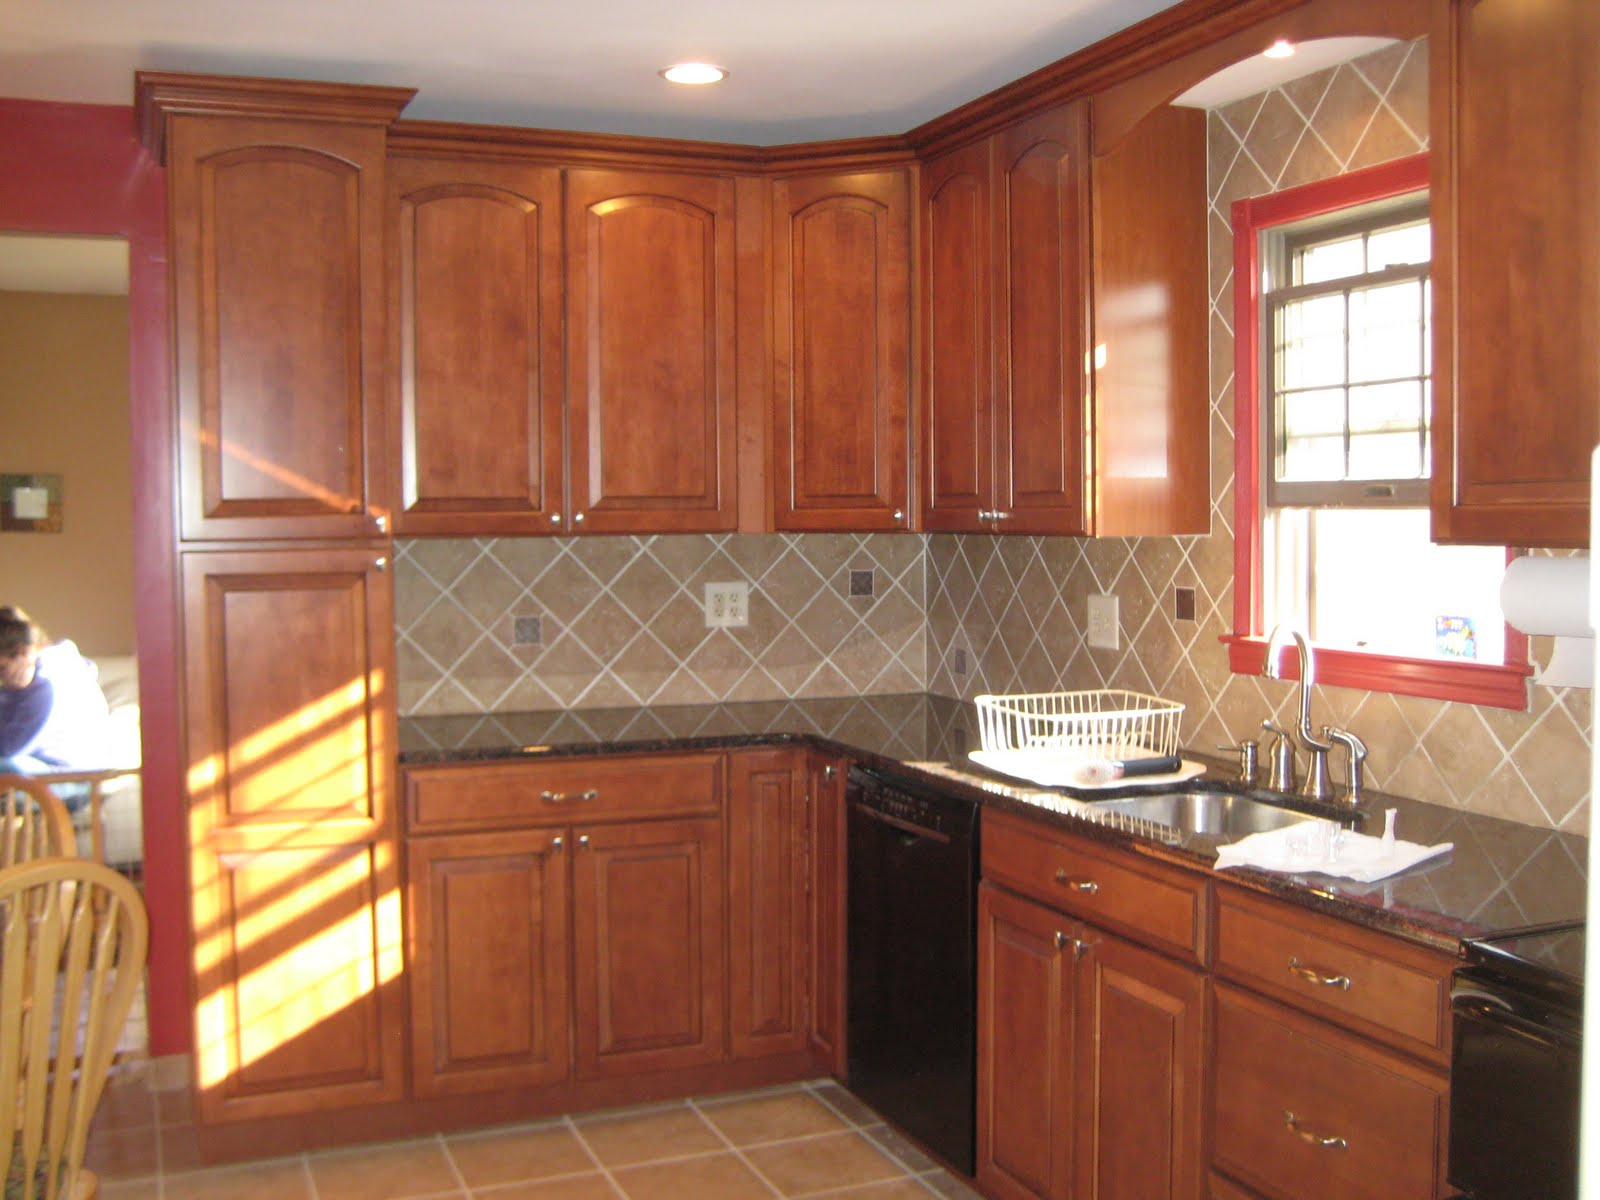 Home Remodeling And Improvements Tips And How To 39 S Granite Kitchen Counter Tops Tile Kitchen